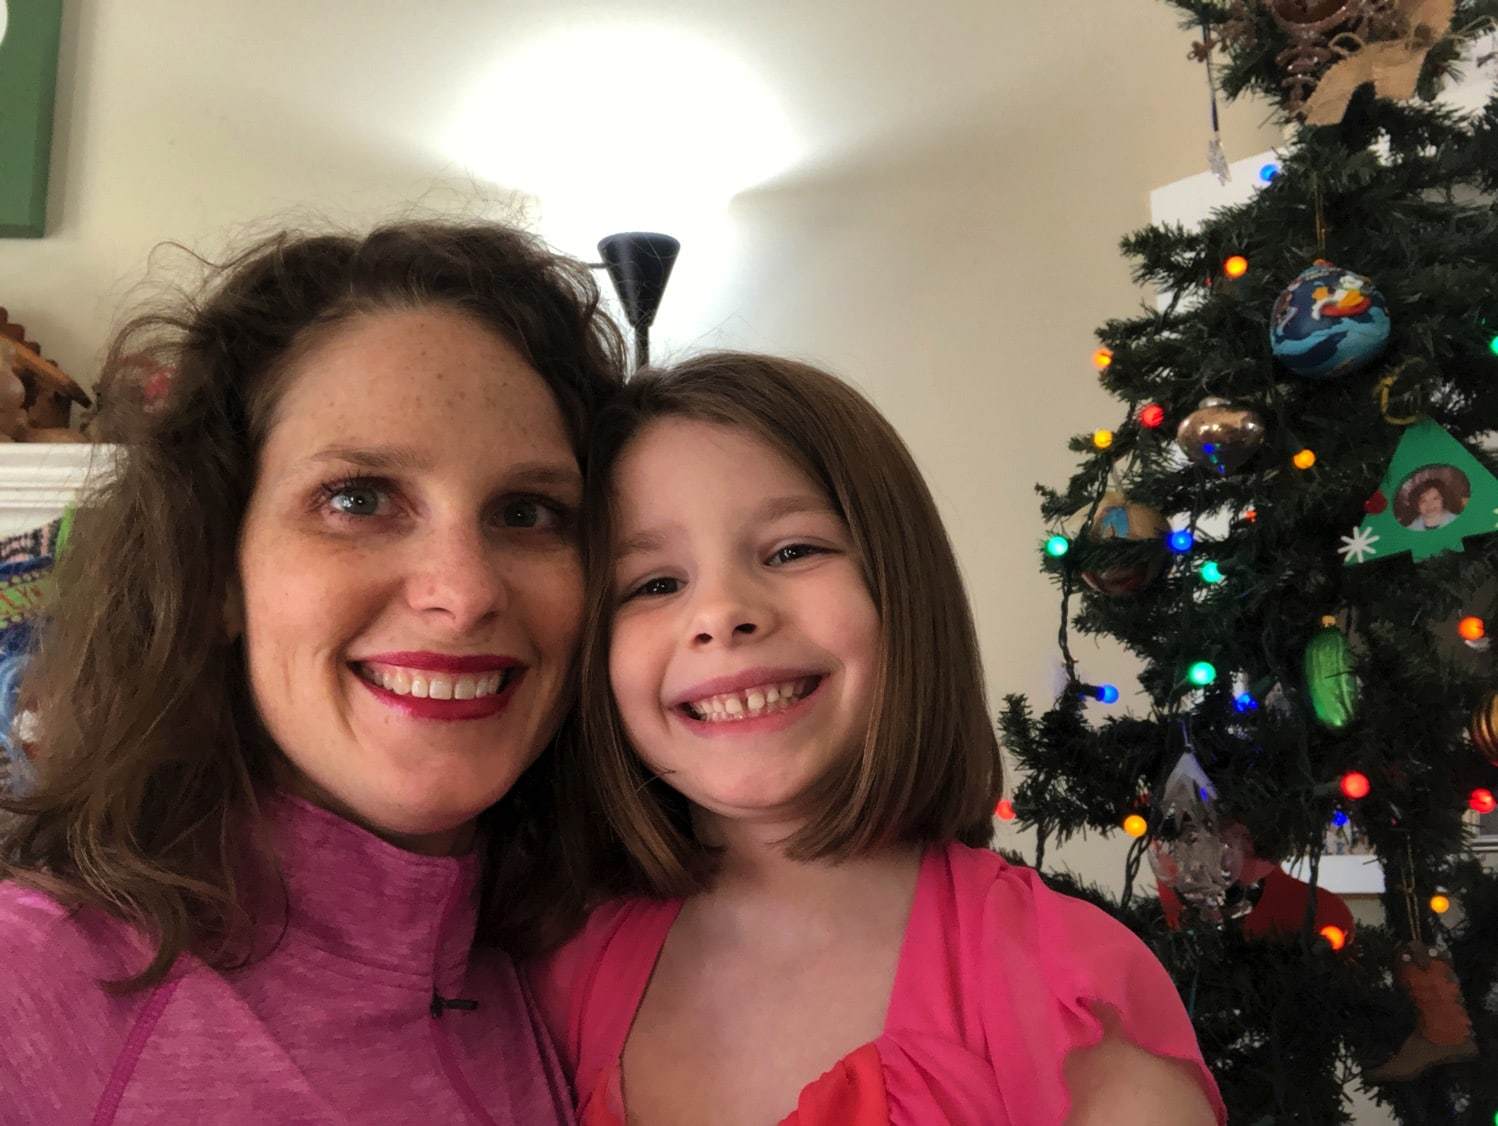 Mommy and Me Monday by the tree